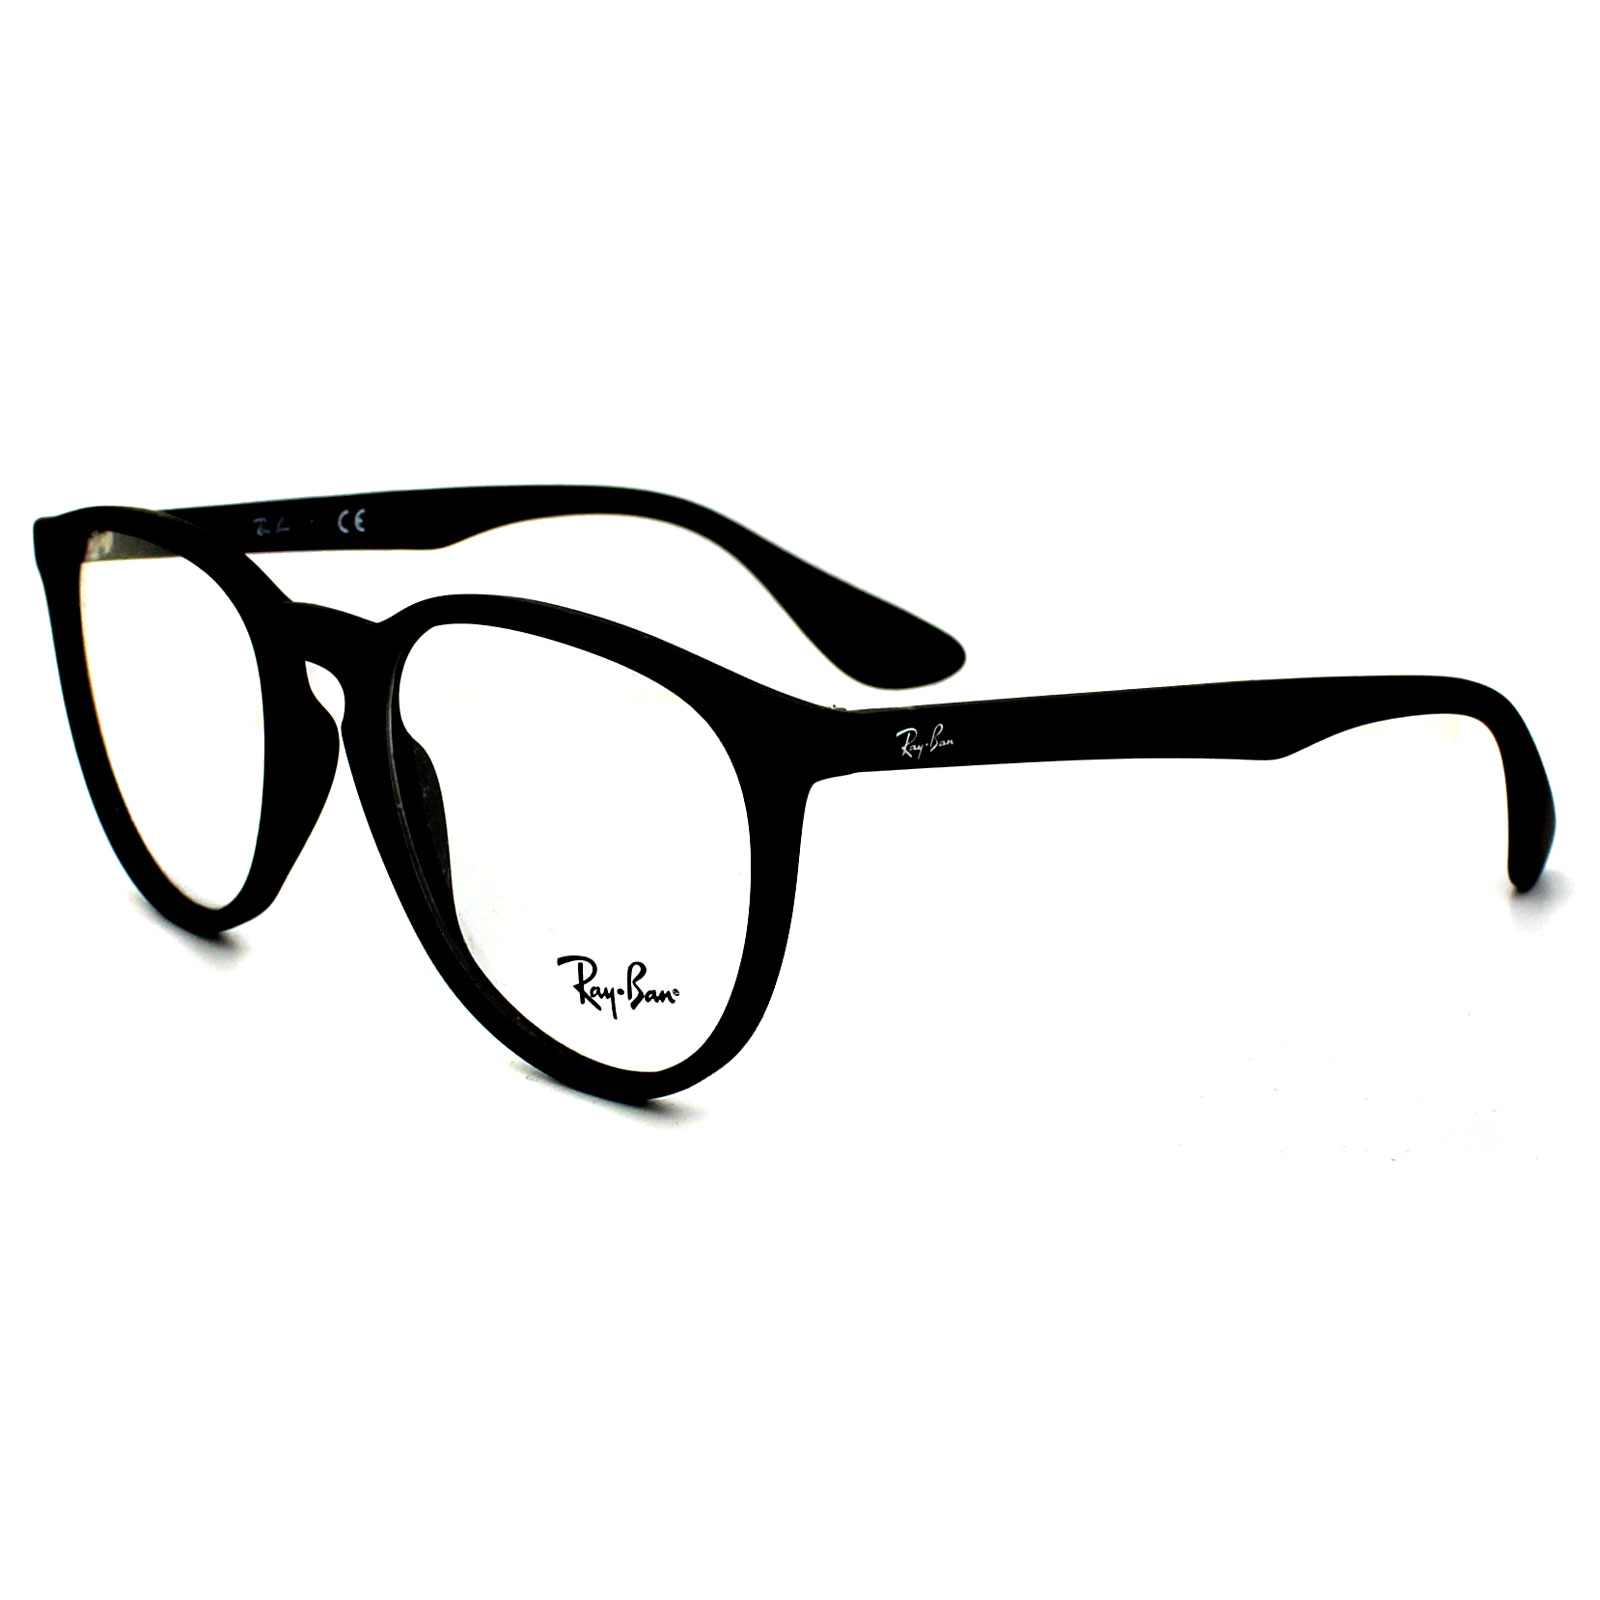 72157db7d7 Sentinel Ray-Ban Glasses Frames 7046 5364 Rubberised Black Clear